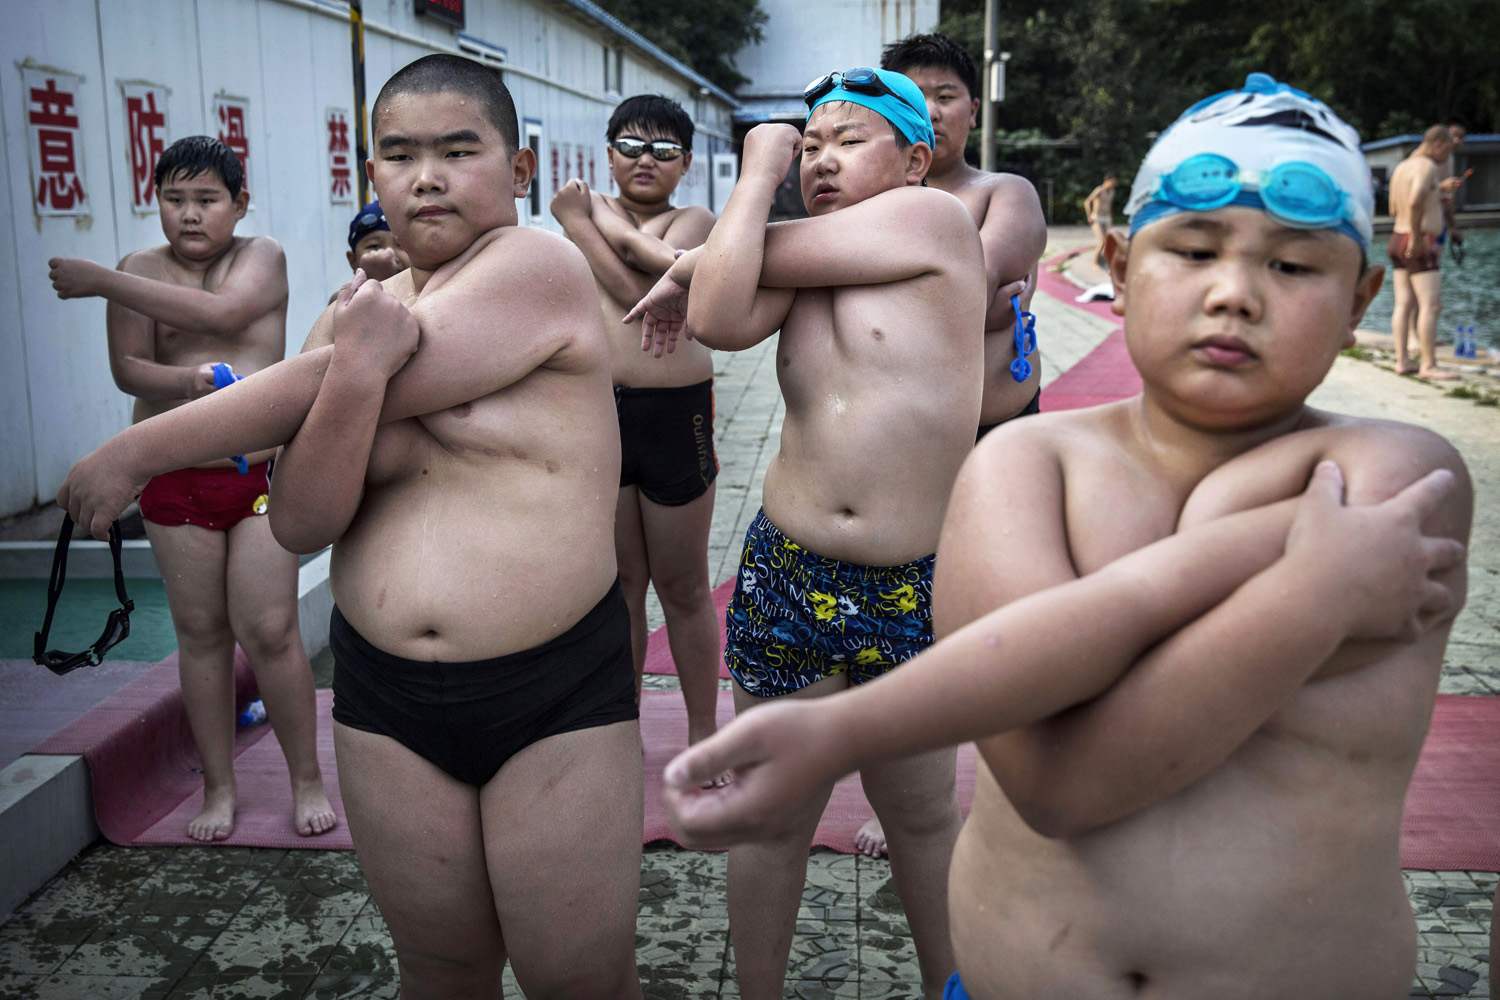 Jul. 15, 2014. Overweight Chinese students stretch after swimming during training at a camp held for overweight children in Beijing, China.